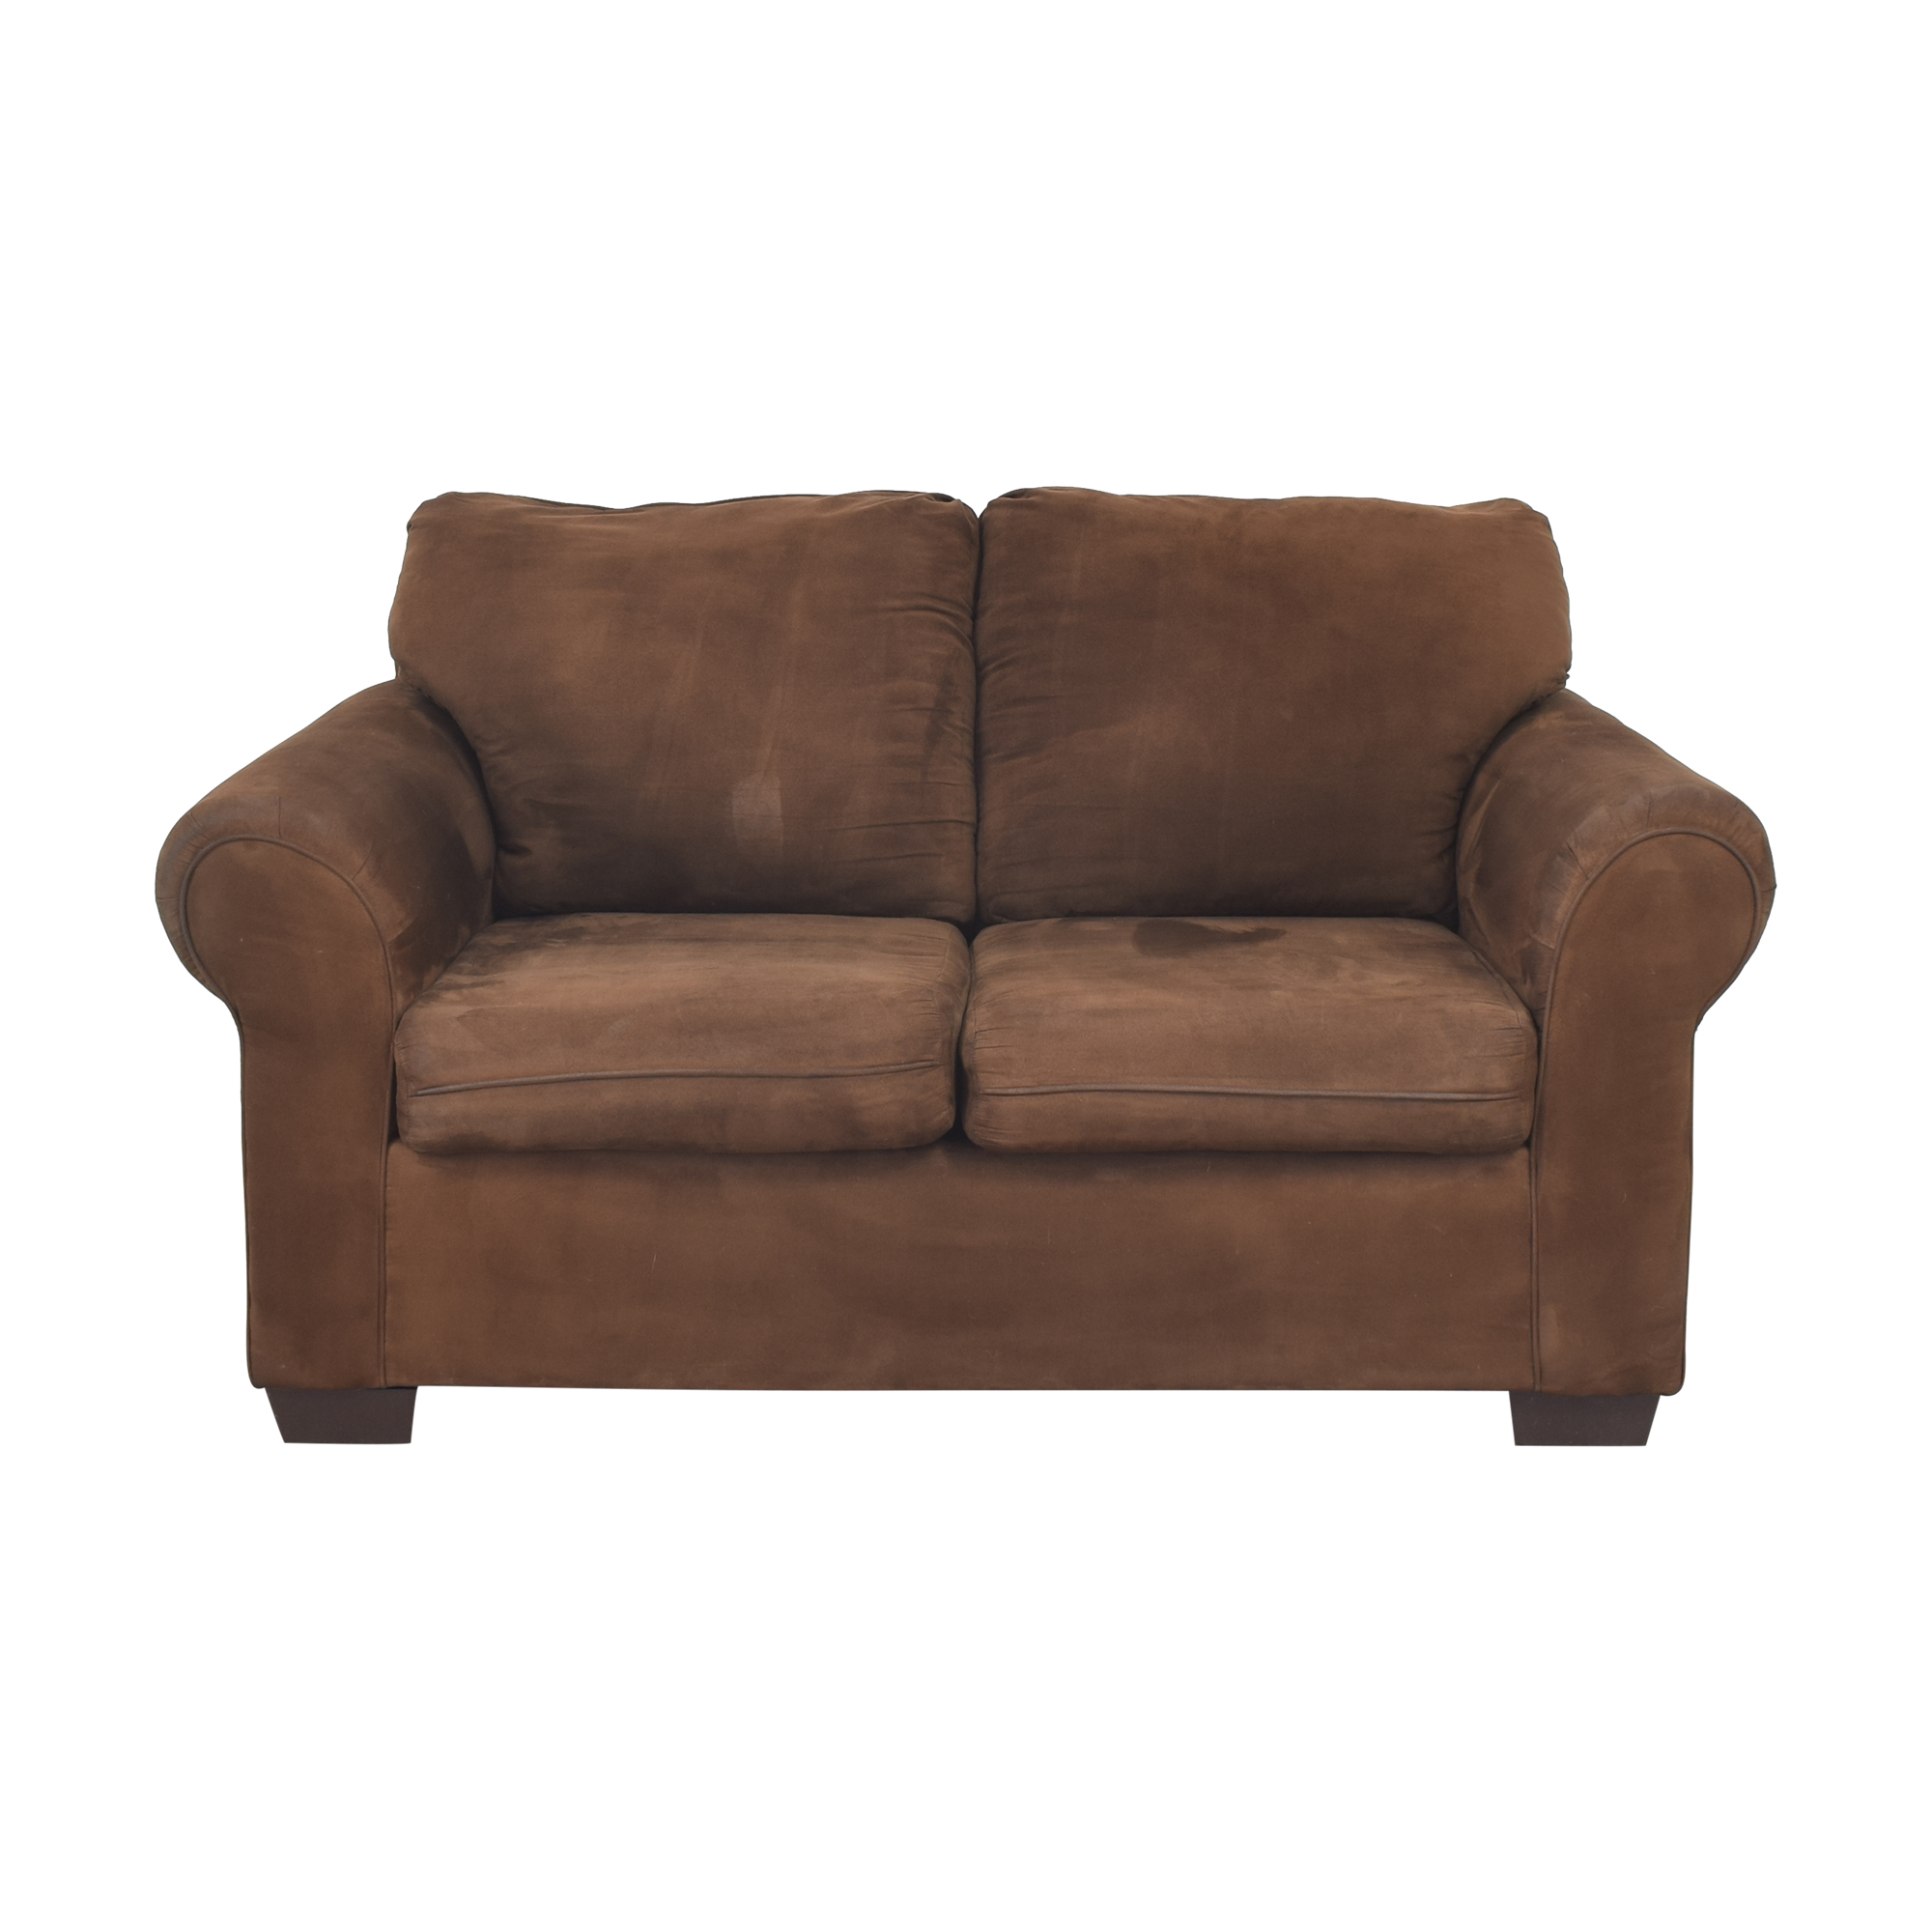 buy United Furniture United Furniture Roll Arm Loveseat online